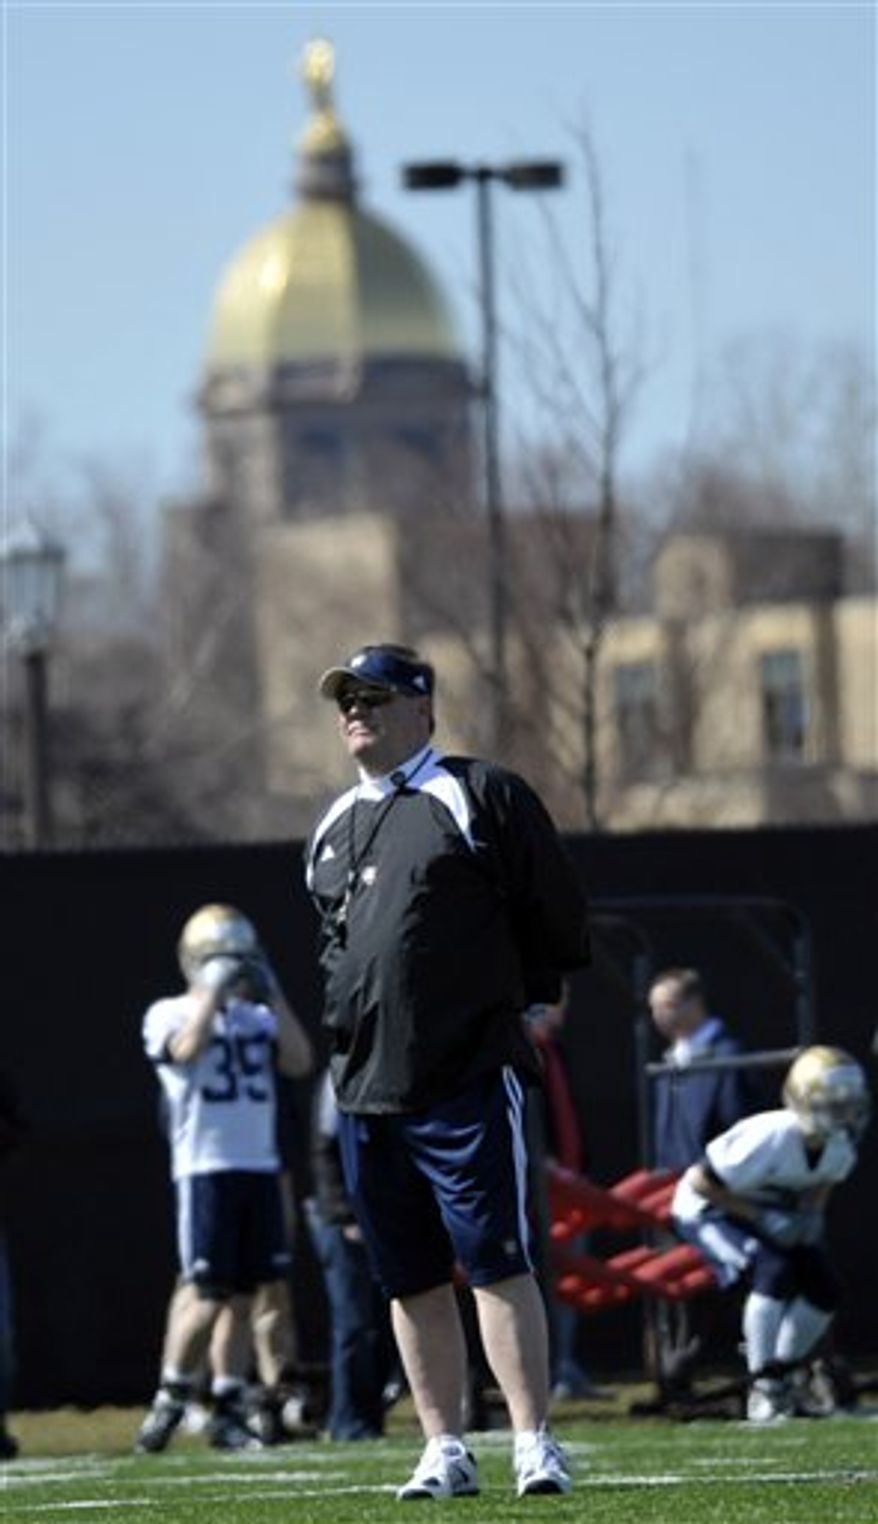 FILE - In this Sept. 4, 2010, file photo, Notre Dame head coach Brian Kelly looks on before an NCAA college football game against Purdue in South Bend, Ind. Spring practice doesn't start until Wednesday, March 23, 2011,  and Kelly already has a big problem. He's suspended his best offensive player, wide receiver Michael Floyd, after he was arrested on a DUI charge, his third run-in with the law over alcohol since 2009.  (AP Photo/Darron Cummings, File)